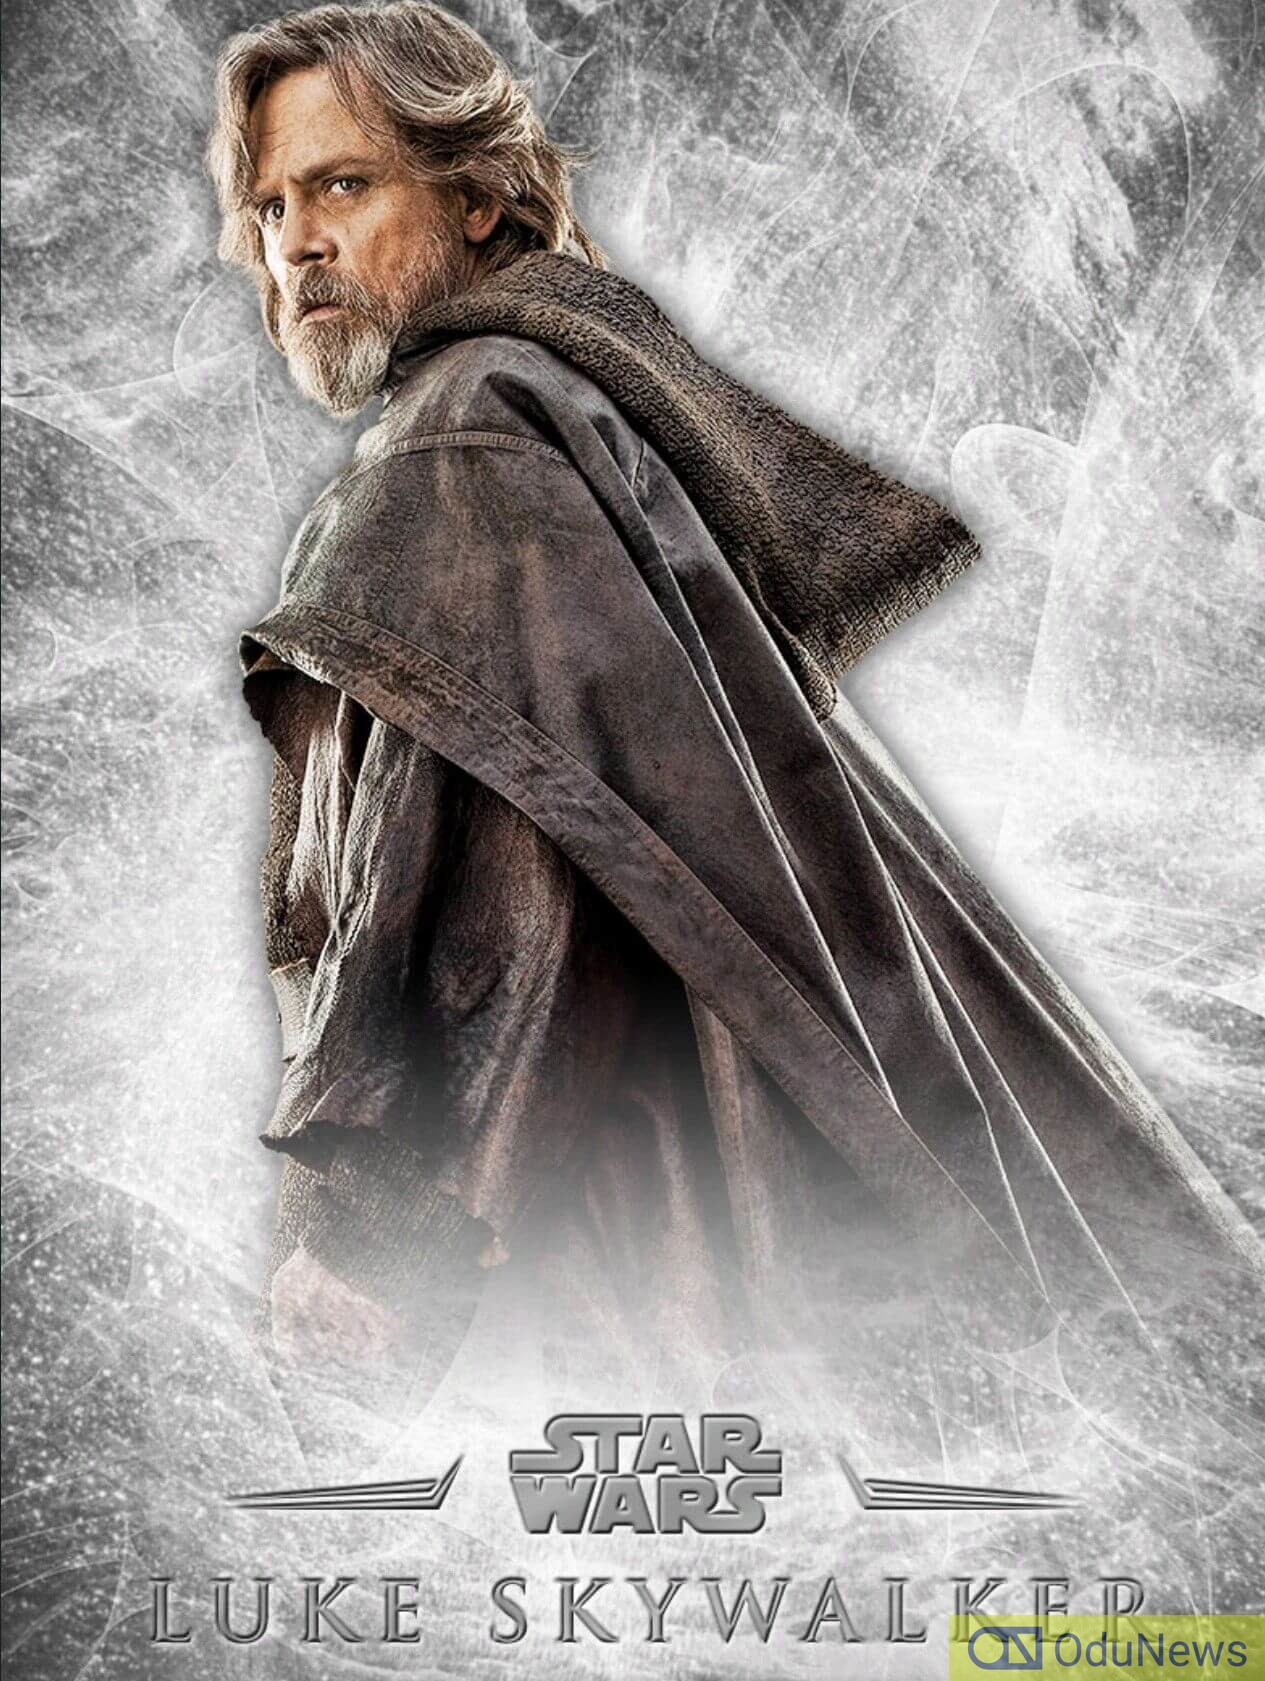 Mark Hamill played the character of Luke Skywalker in the Star Wars franchise